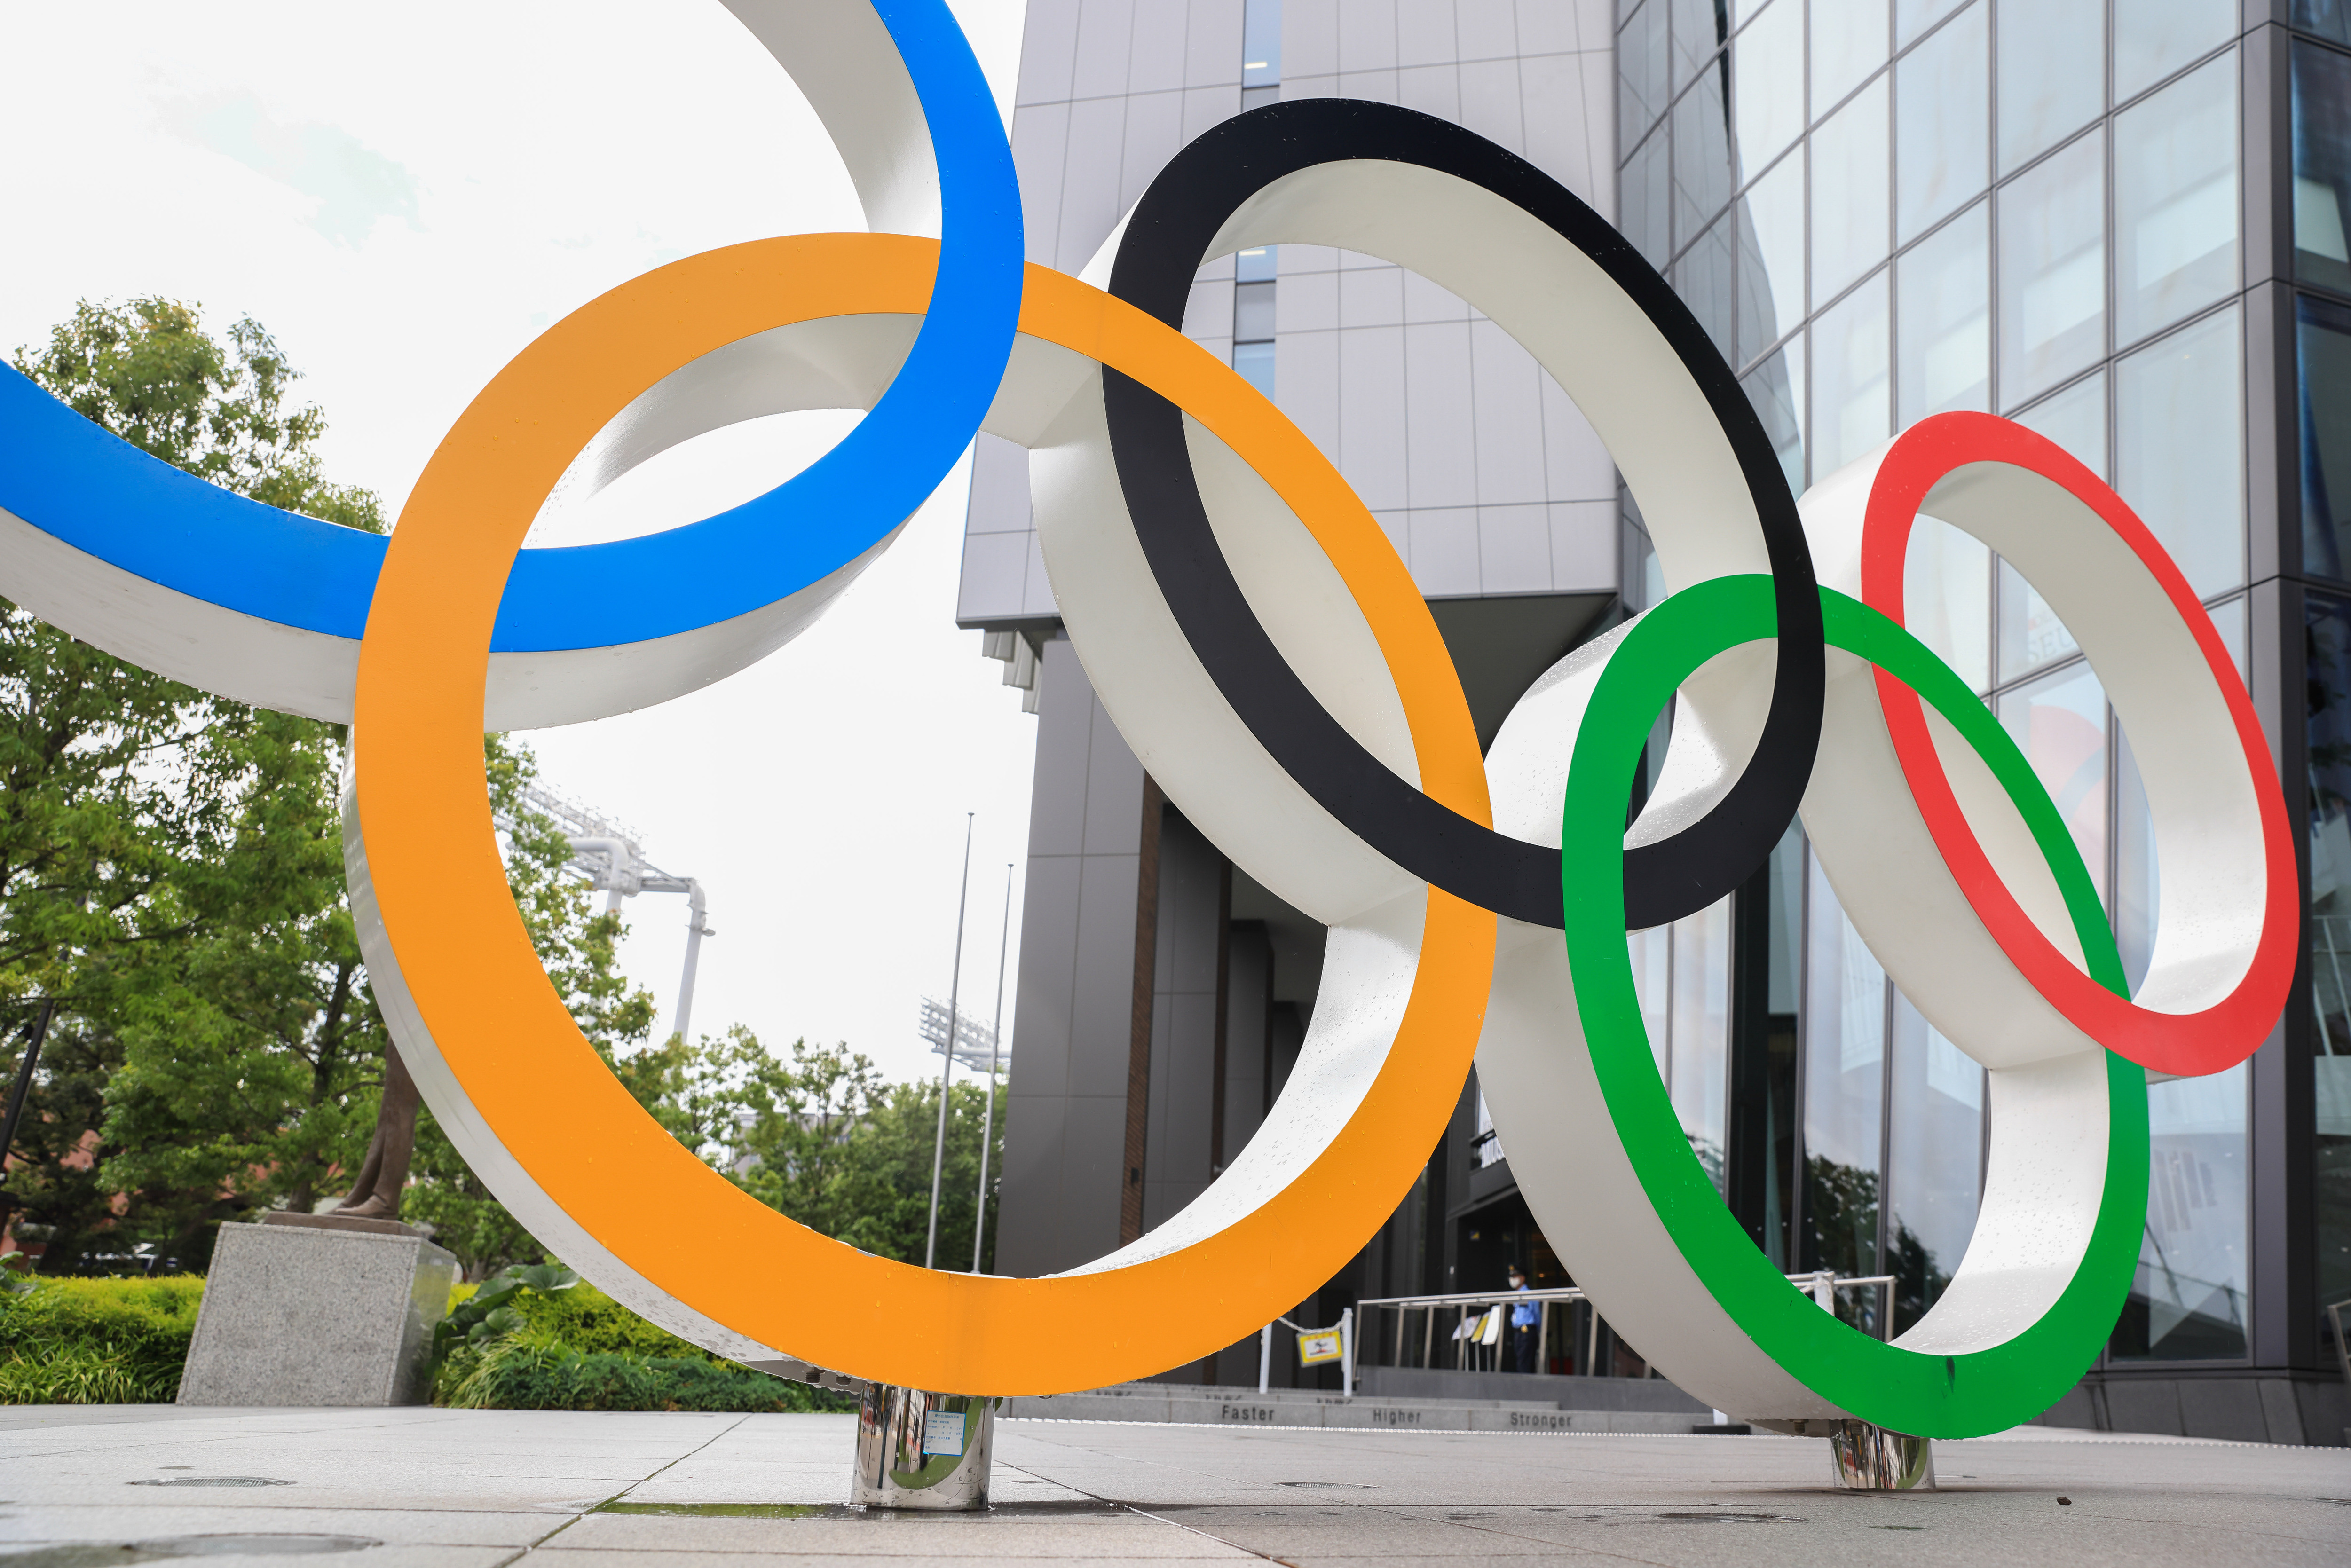 Olympic Rings installation in front of Japan Olympic Museum...